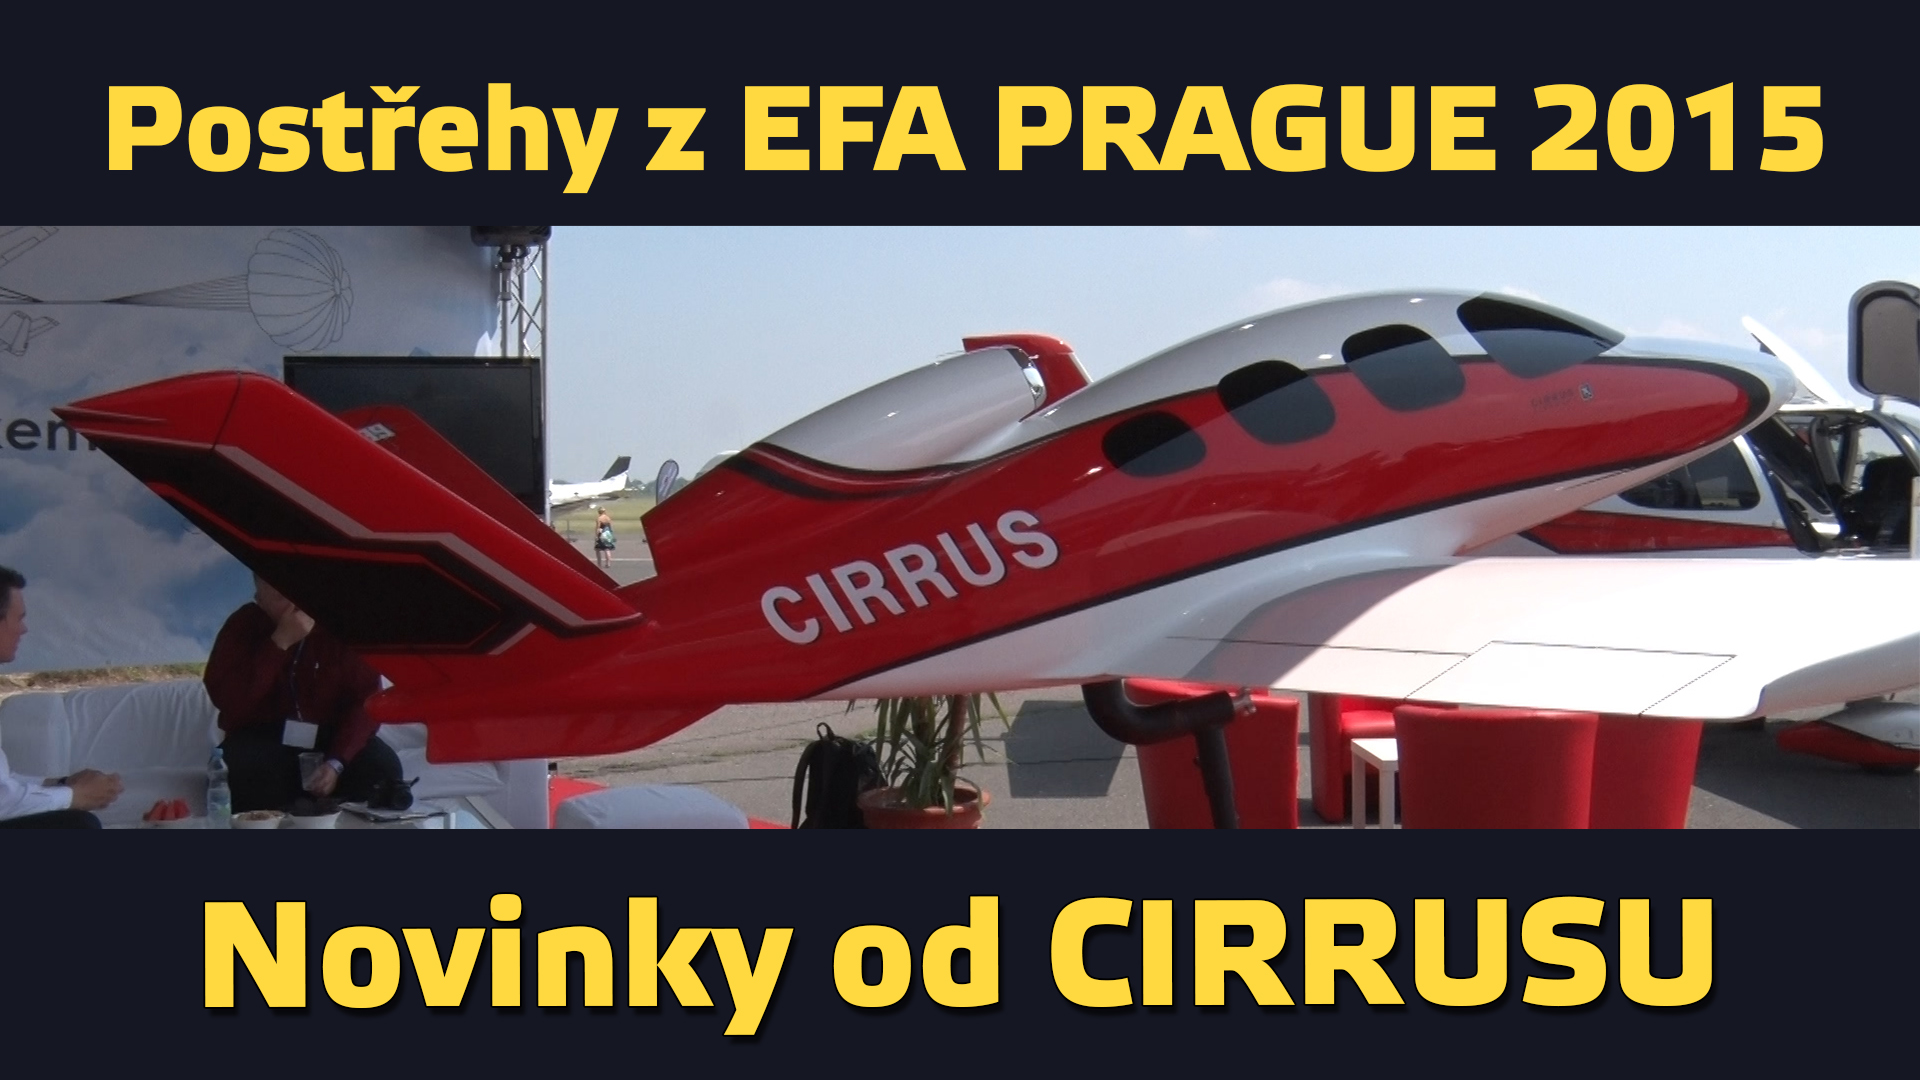 Postřehy z European Festival of Aviation 2015